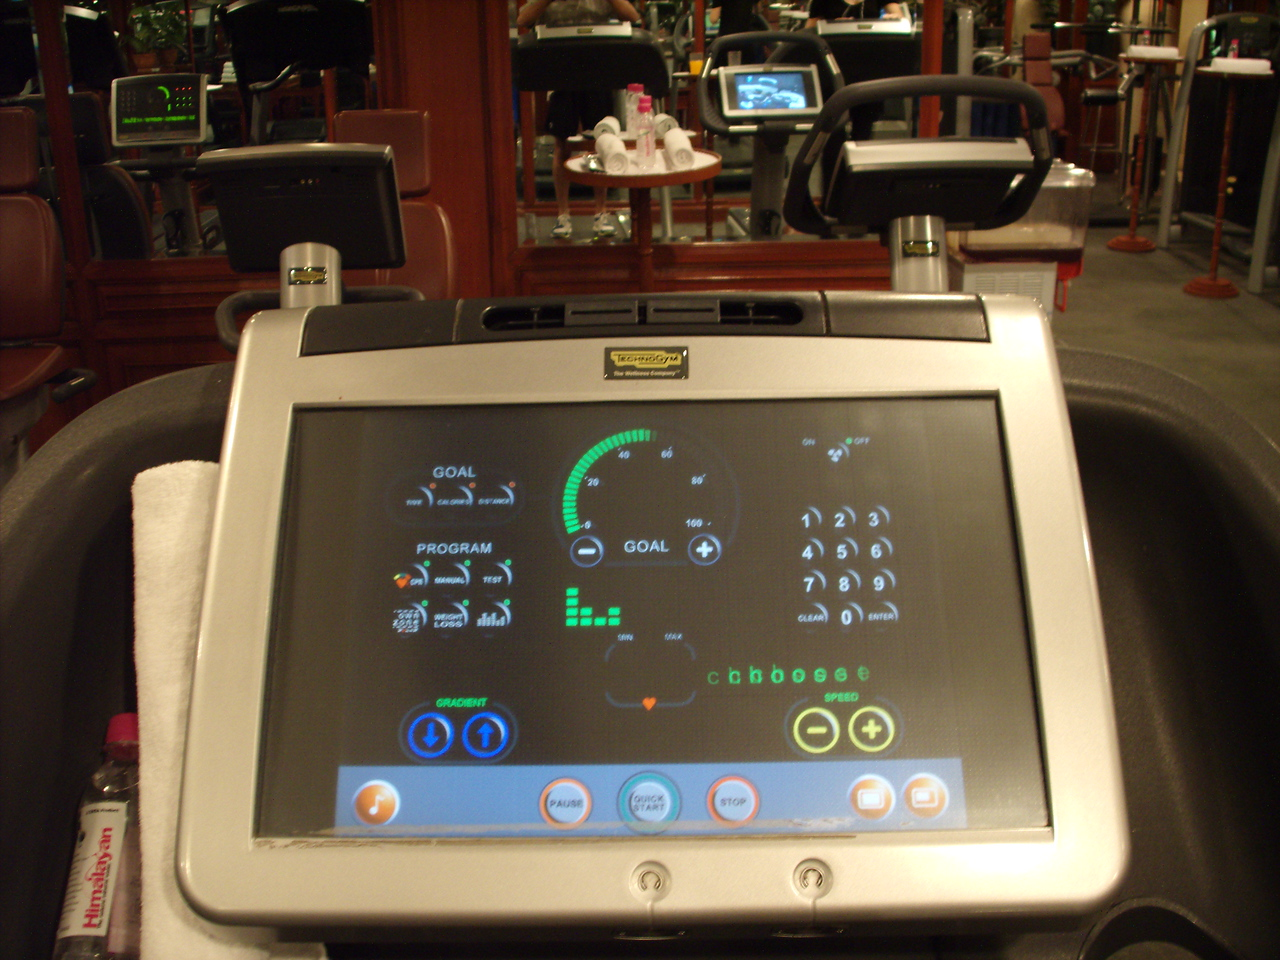 Touch screen control panel on the treadmills at the Taj Mahel Hotel gym